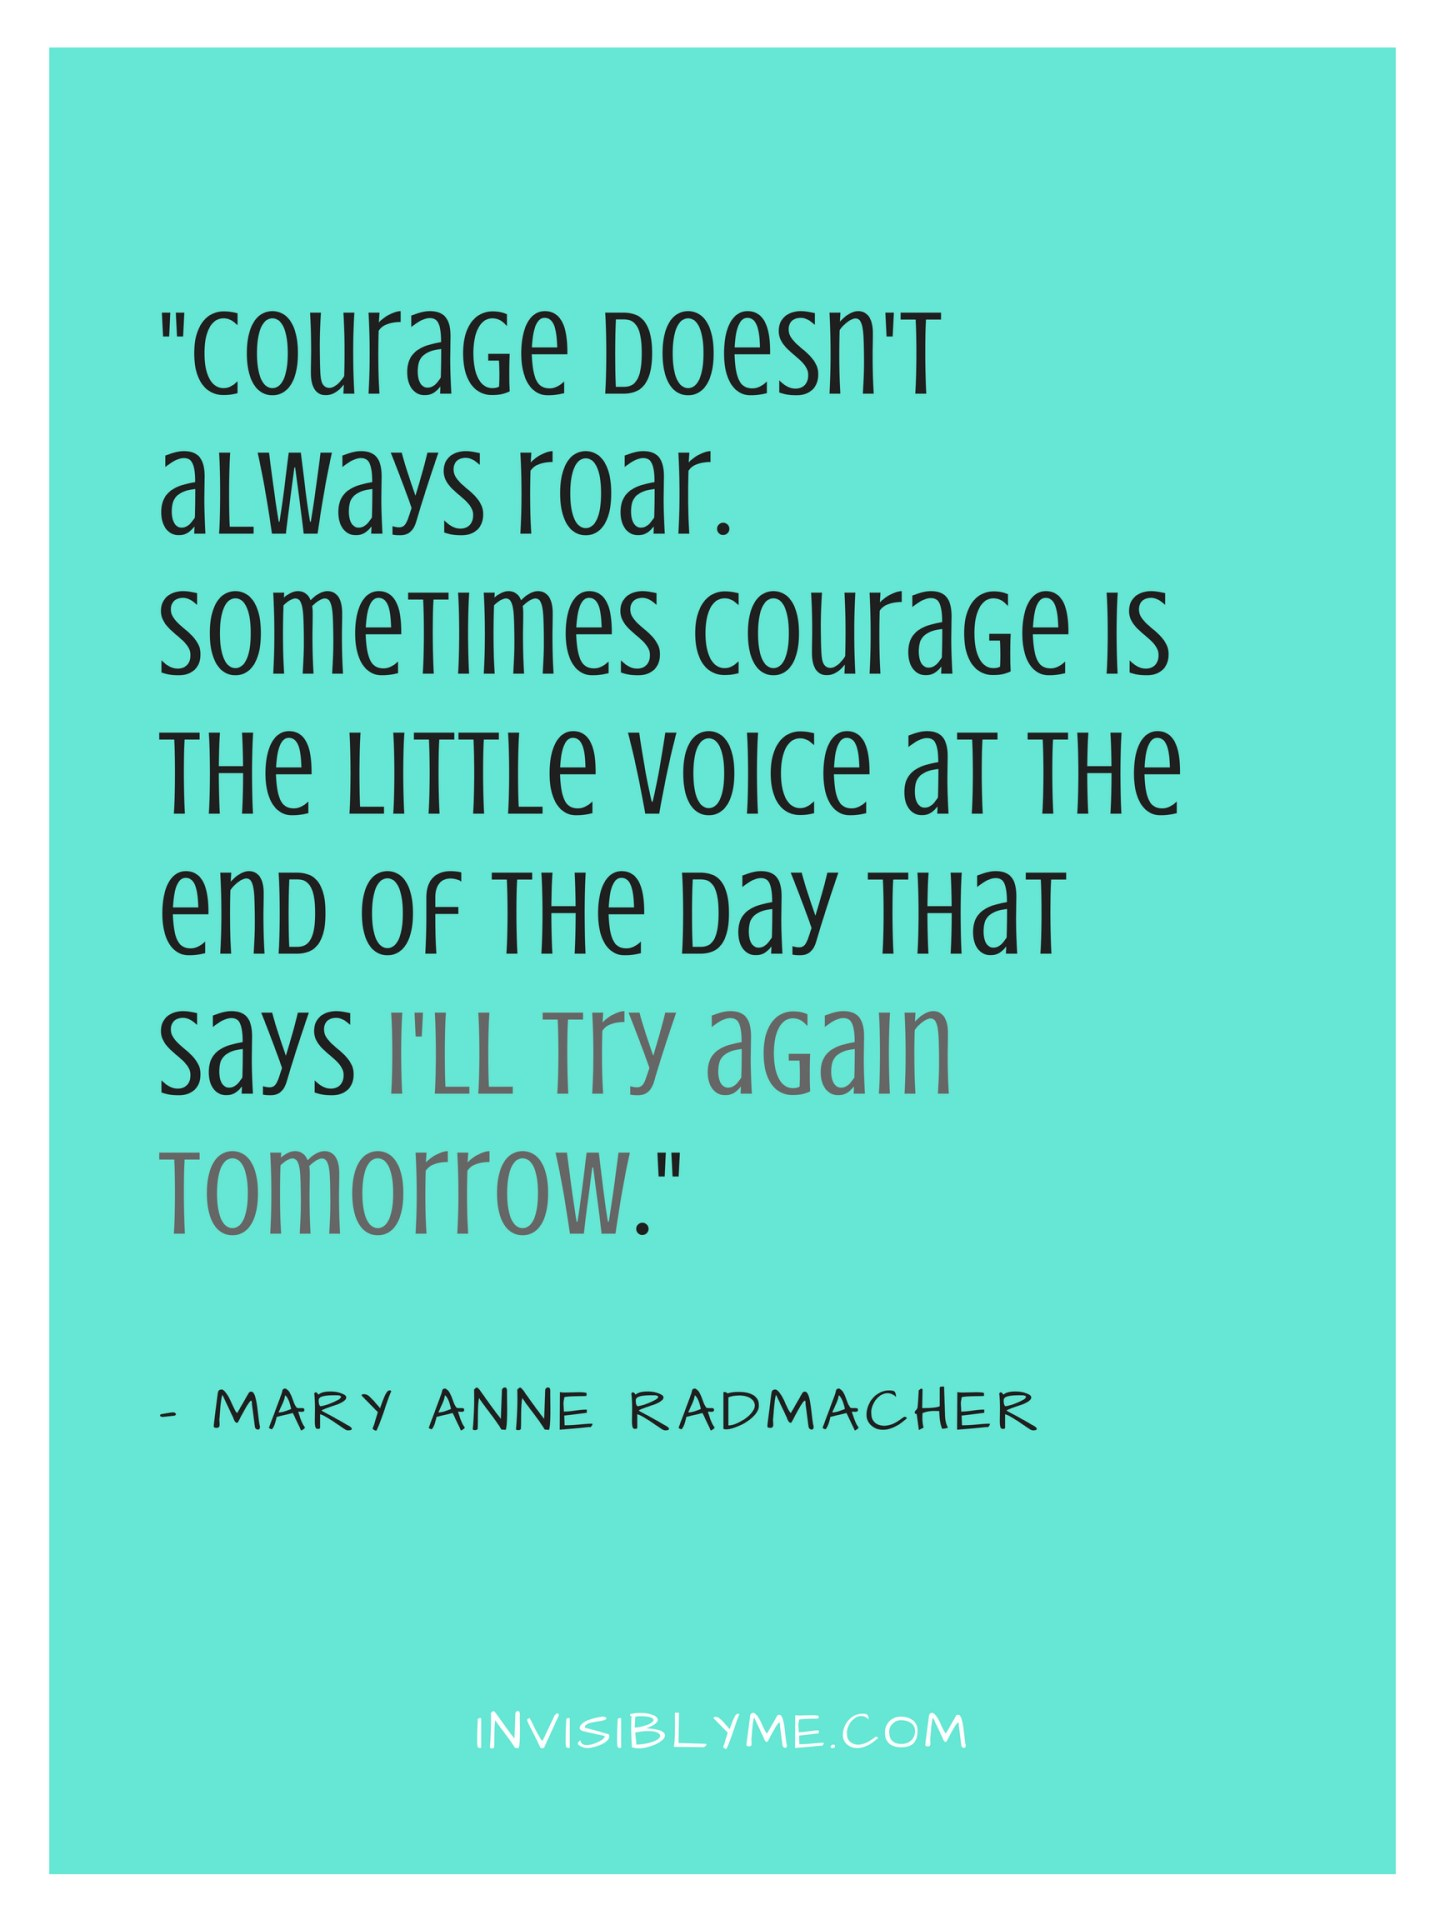 A light green background with a quote by Mary Anne Radmacher : Courage doesn't always roar. Sometimes courage is the little voice at the end of the day that says 'I'll try again tomorrow'.